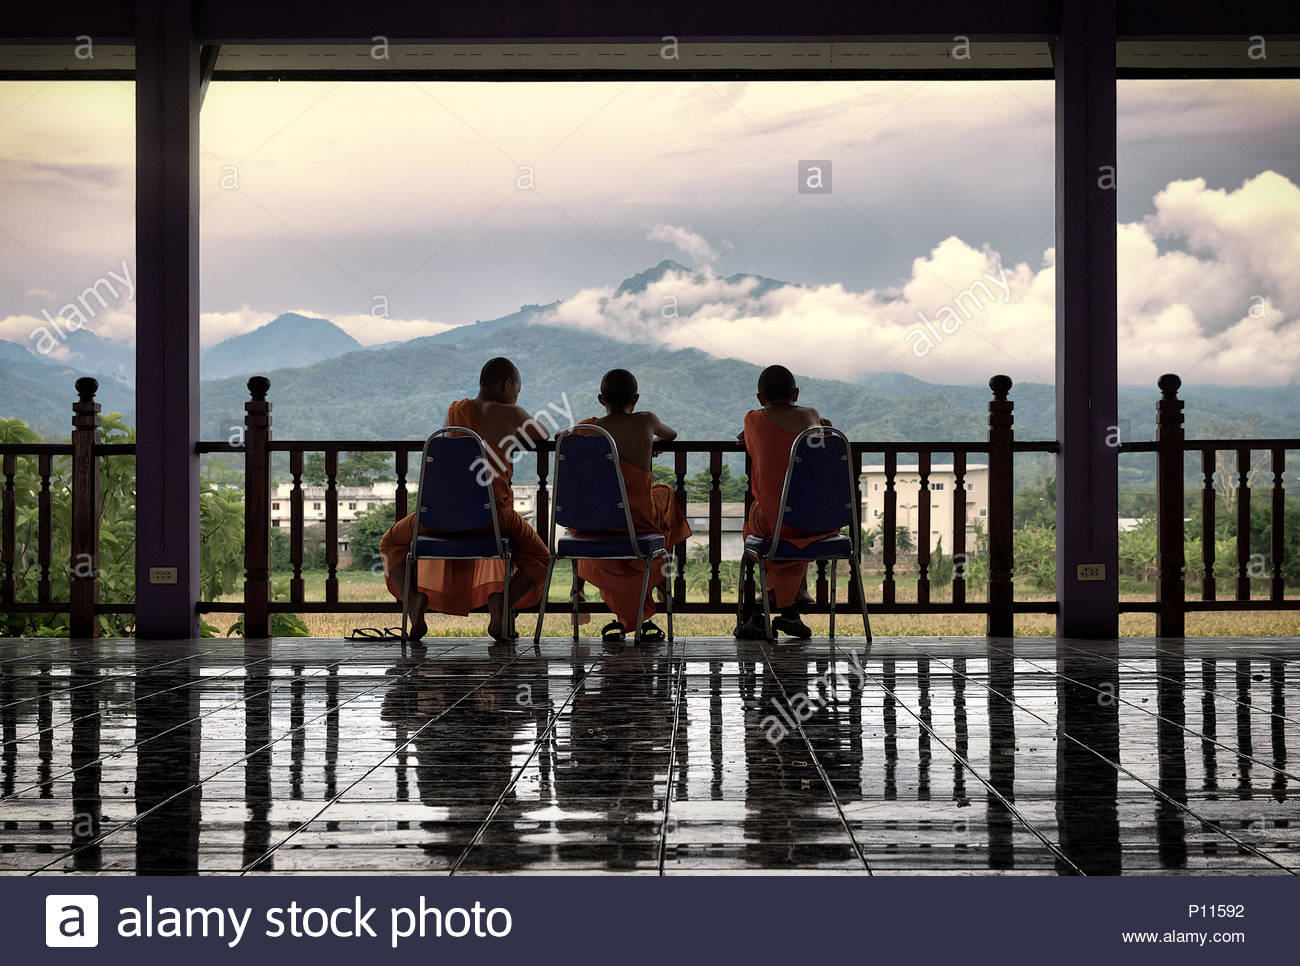 three young buddhist monks looking the mountains in a buddhist monastery in thailand - Stock Image